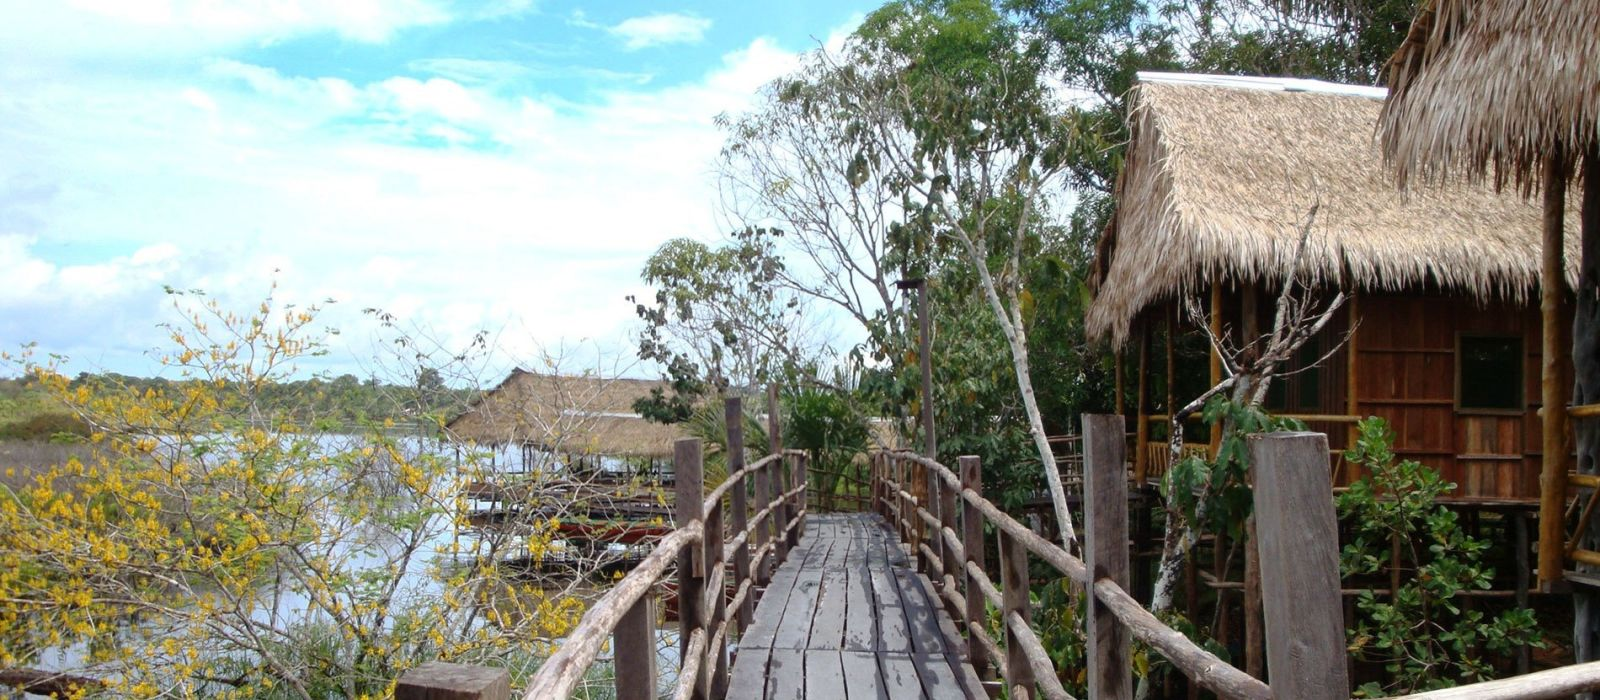 Hotel Tariri Amazon Lodge Brazil